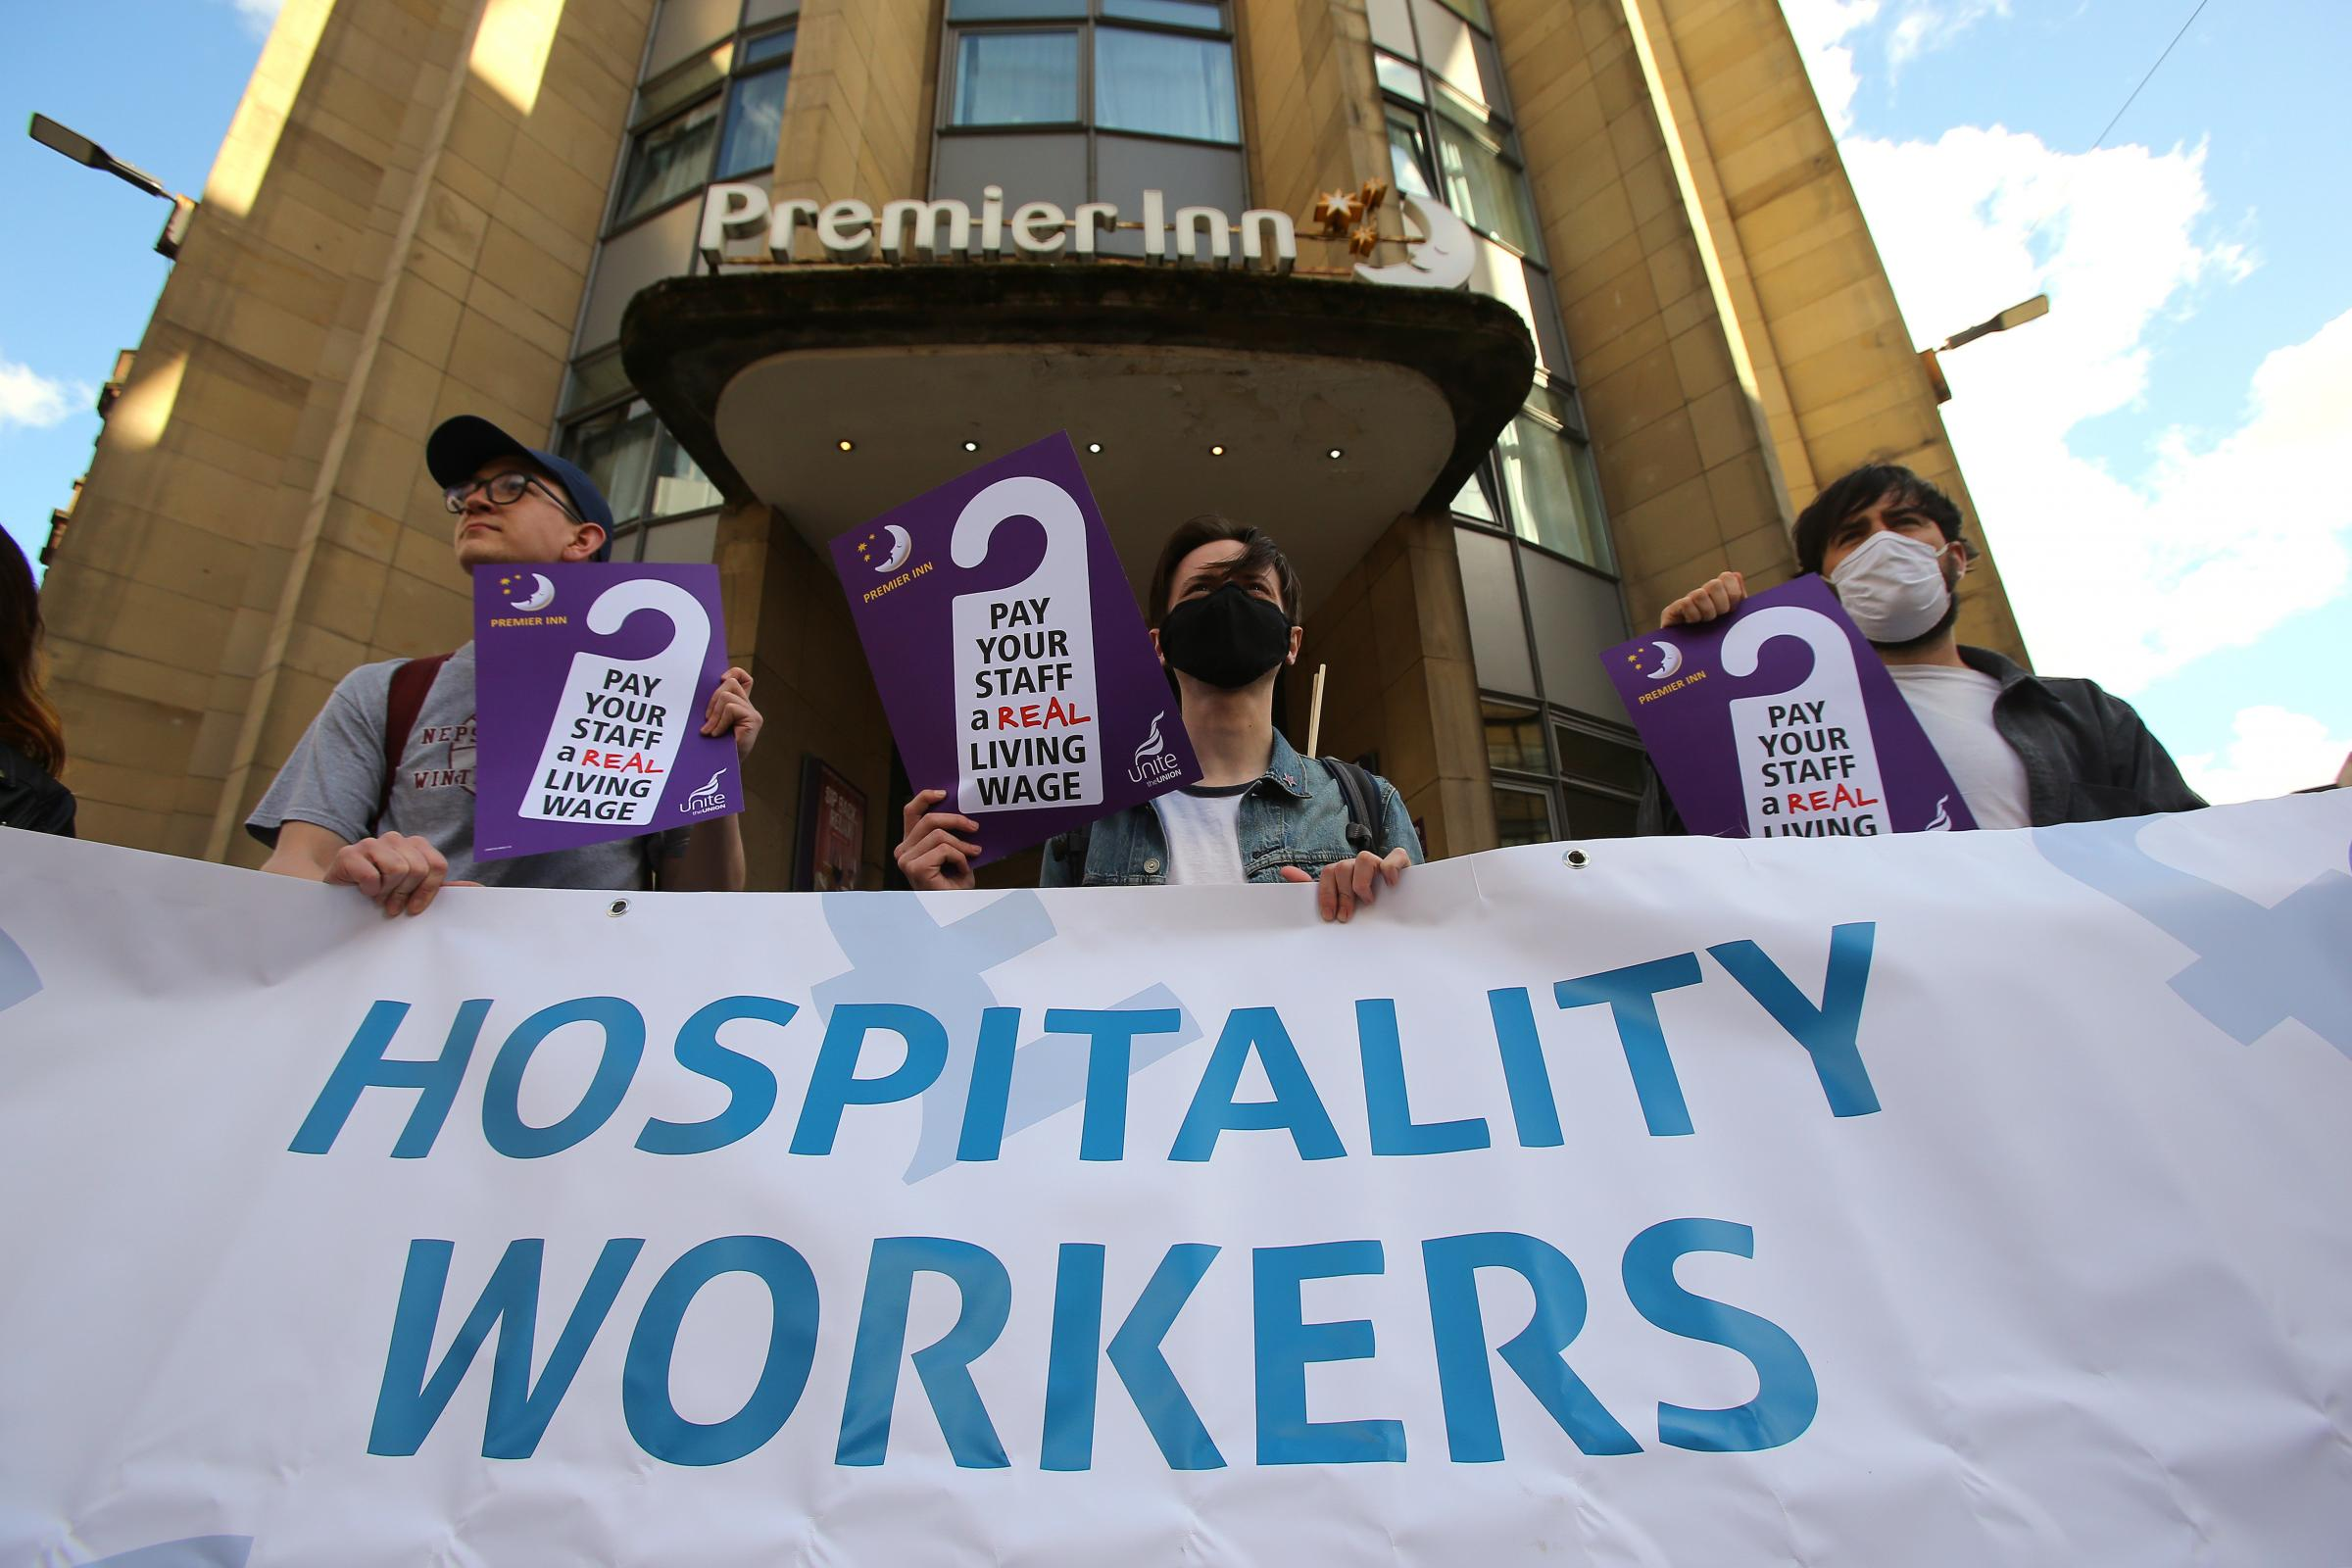 Glasgow Premier Inn workers launch pay campaign with union backing